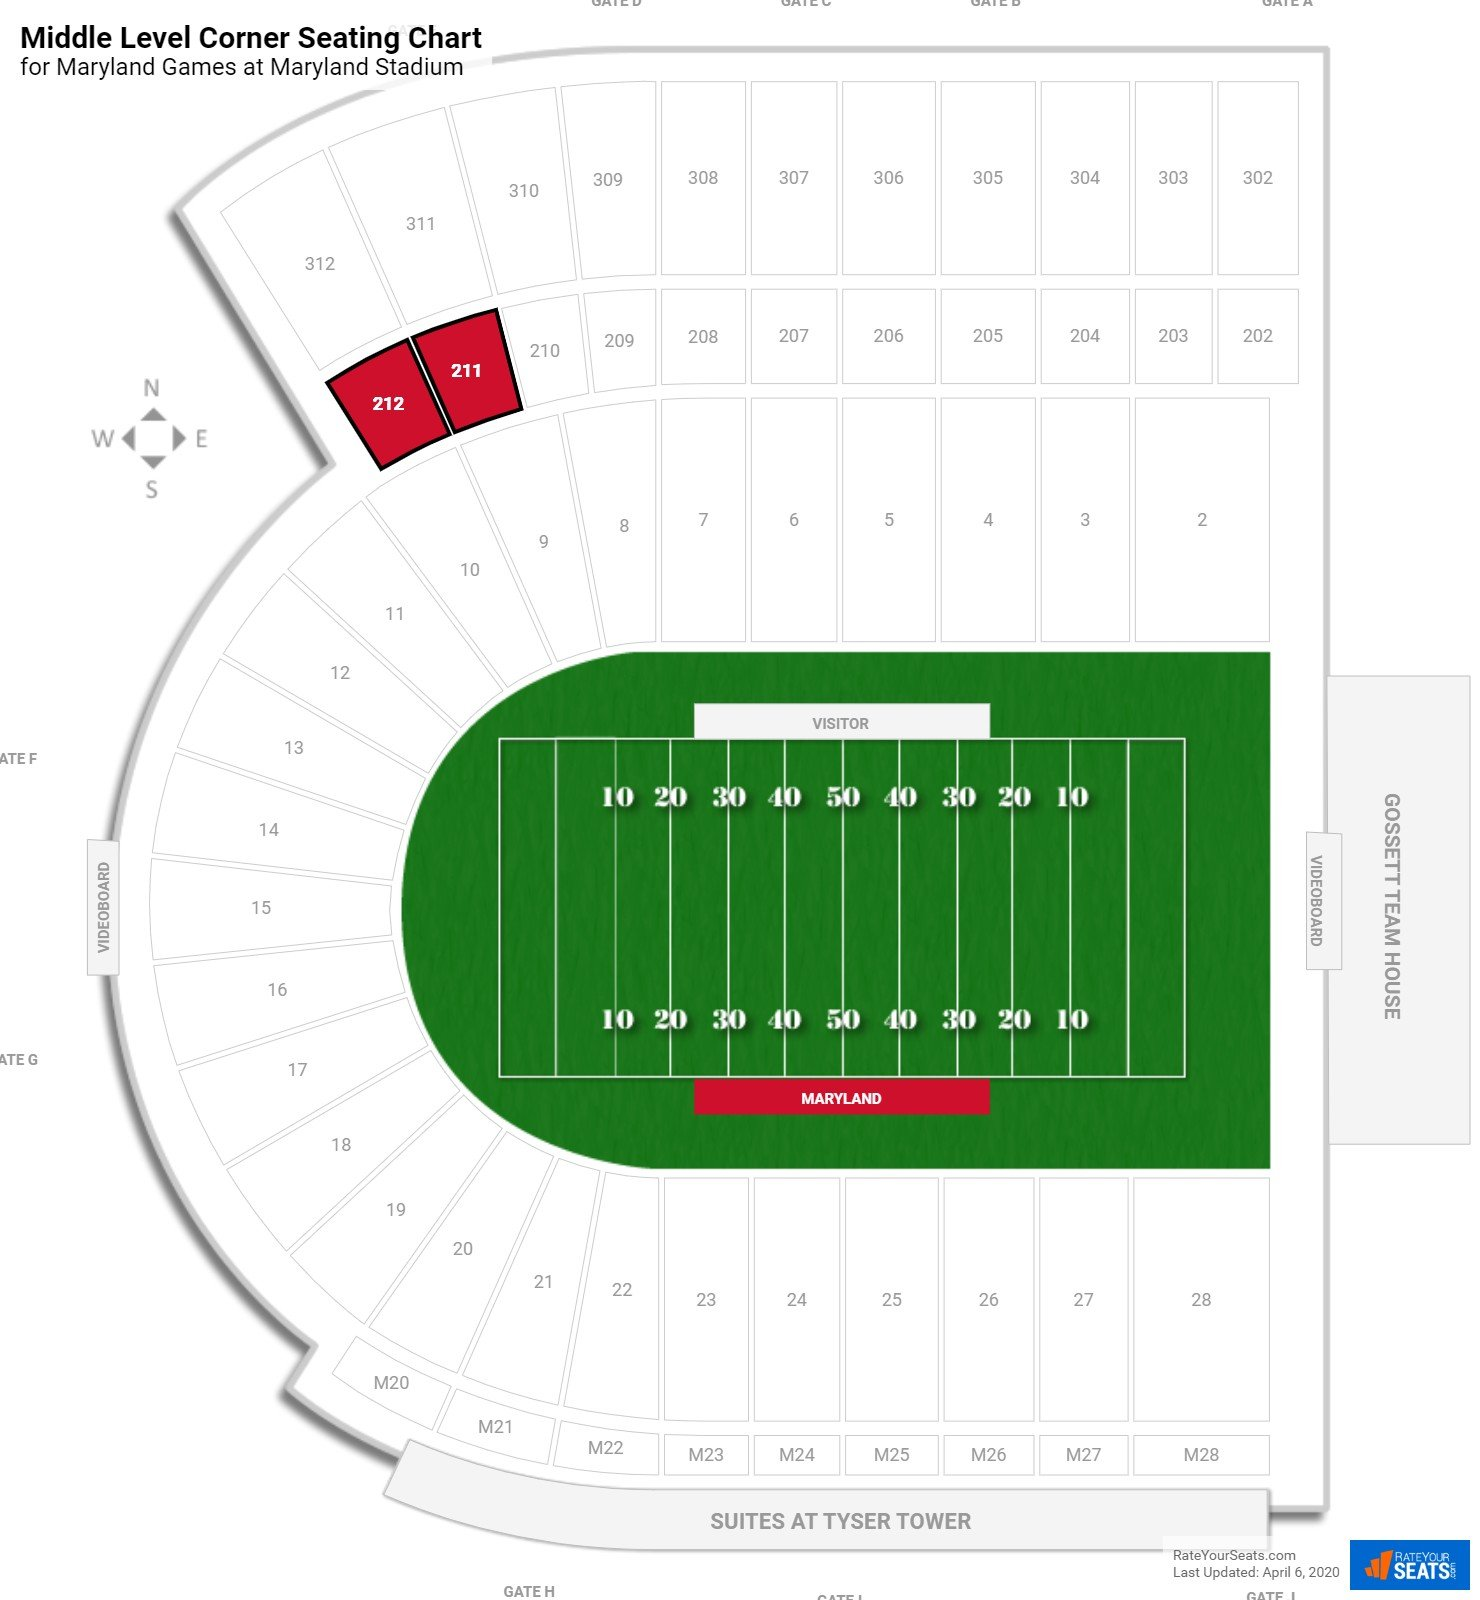 Byrd Stadium Middle Level Corner seating chart